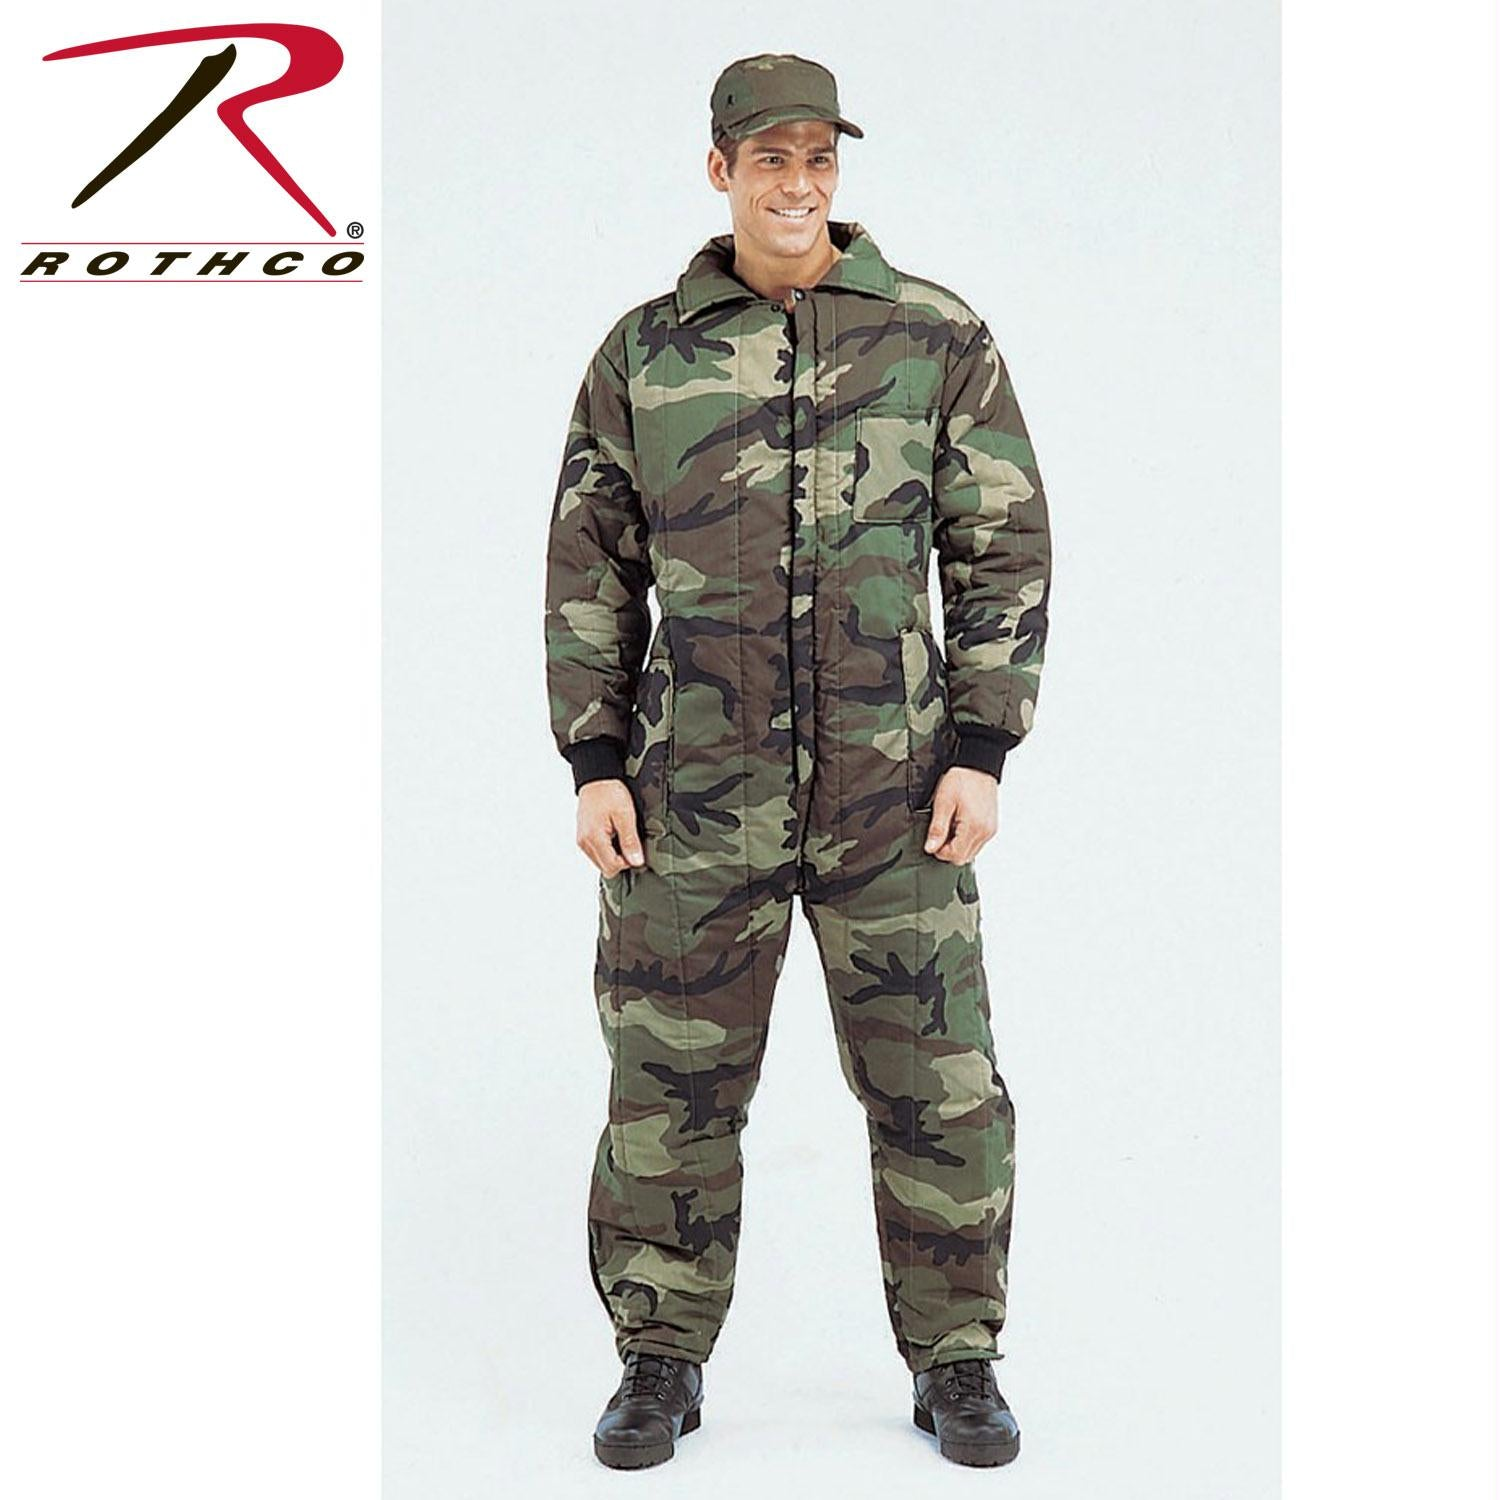 Rothco Insulated Coveralls - Woodland Camo / XL